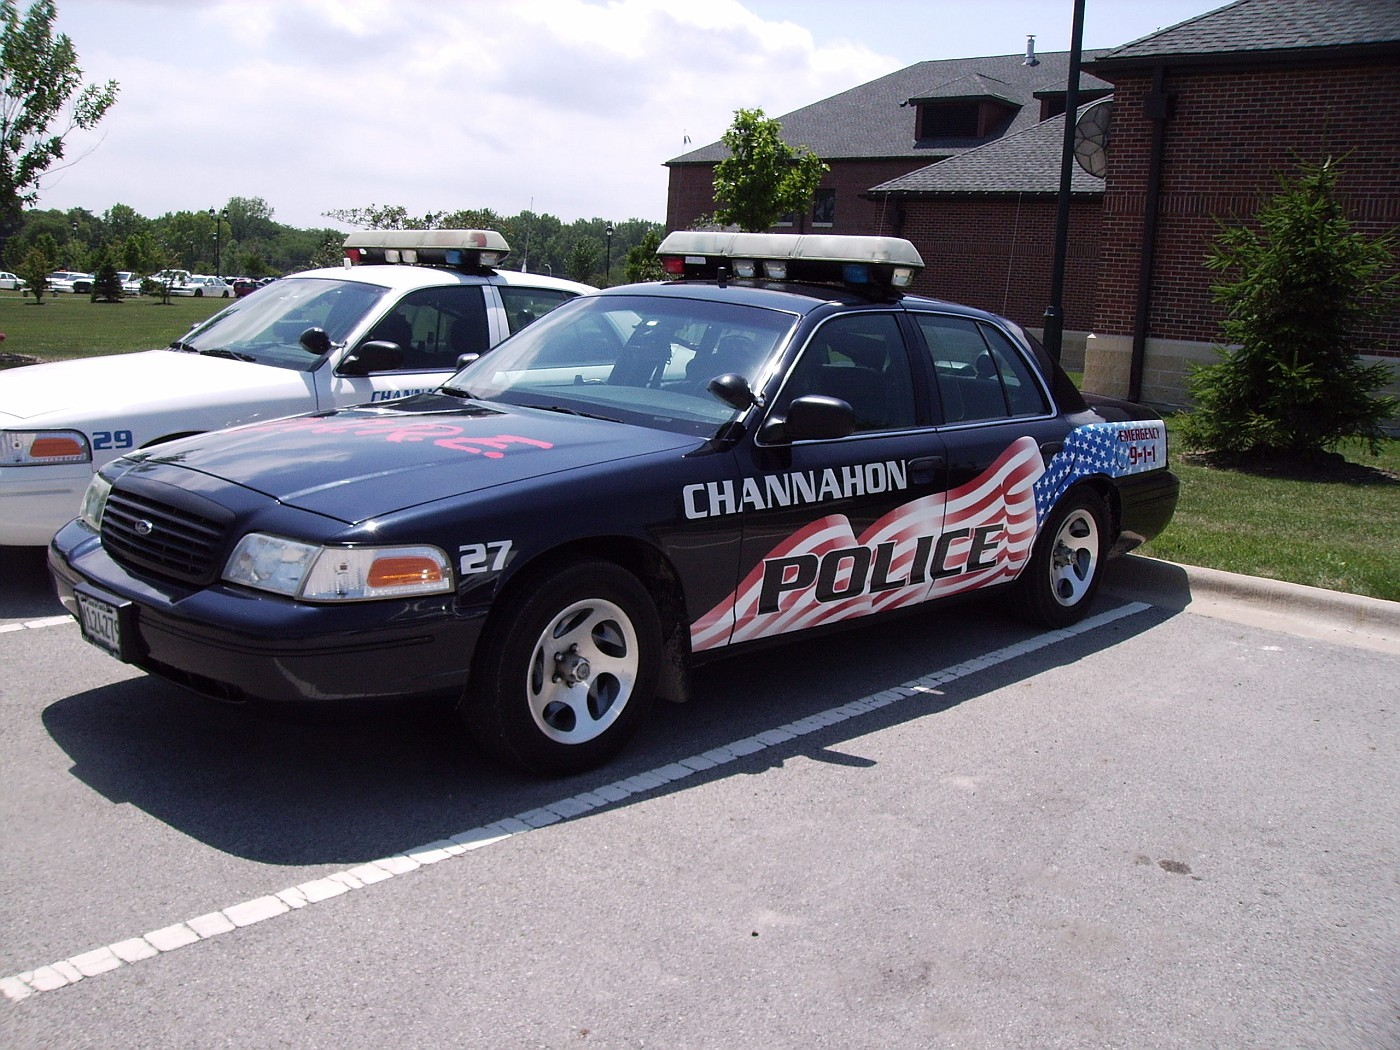 IL - Channahon Police